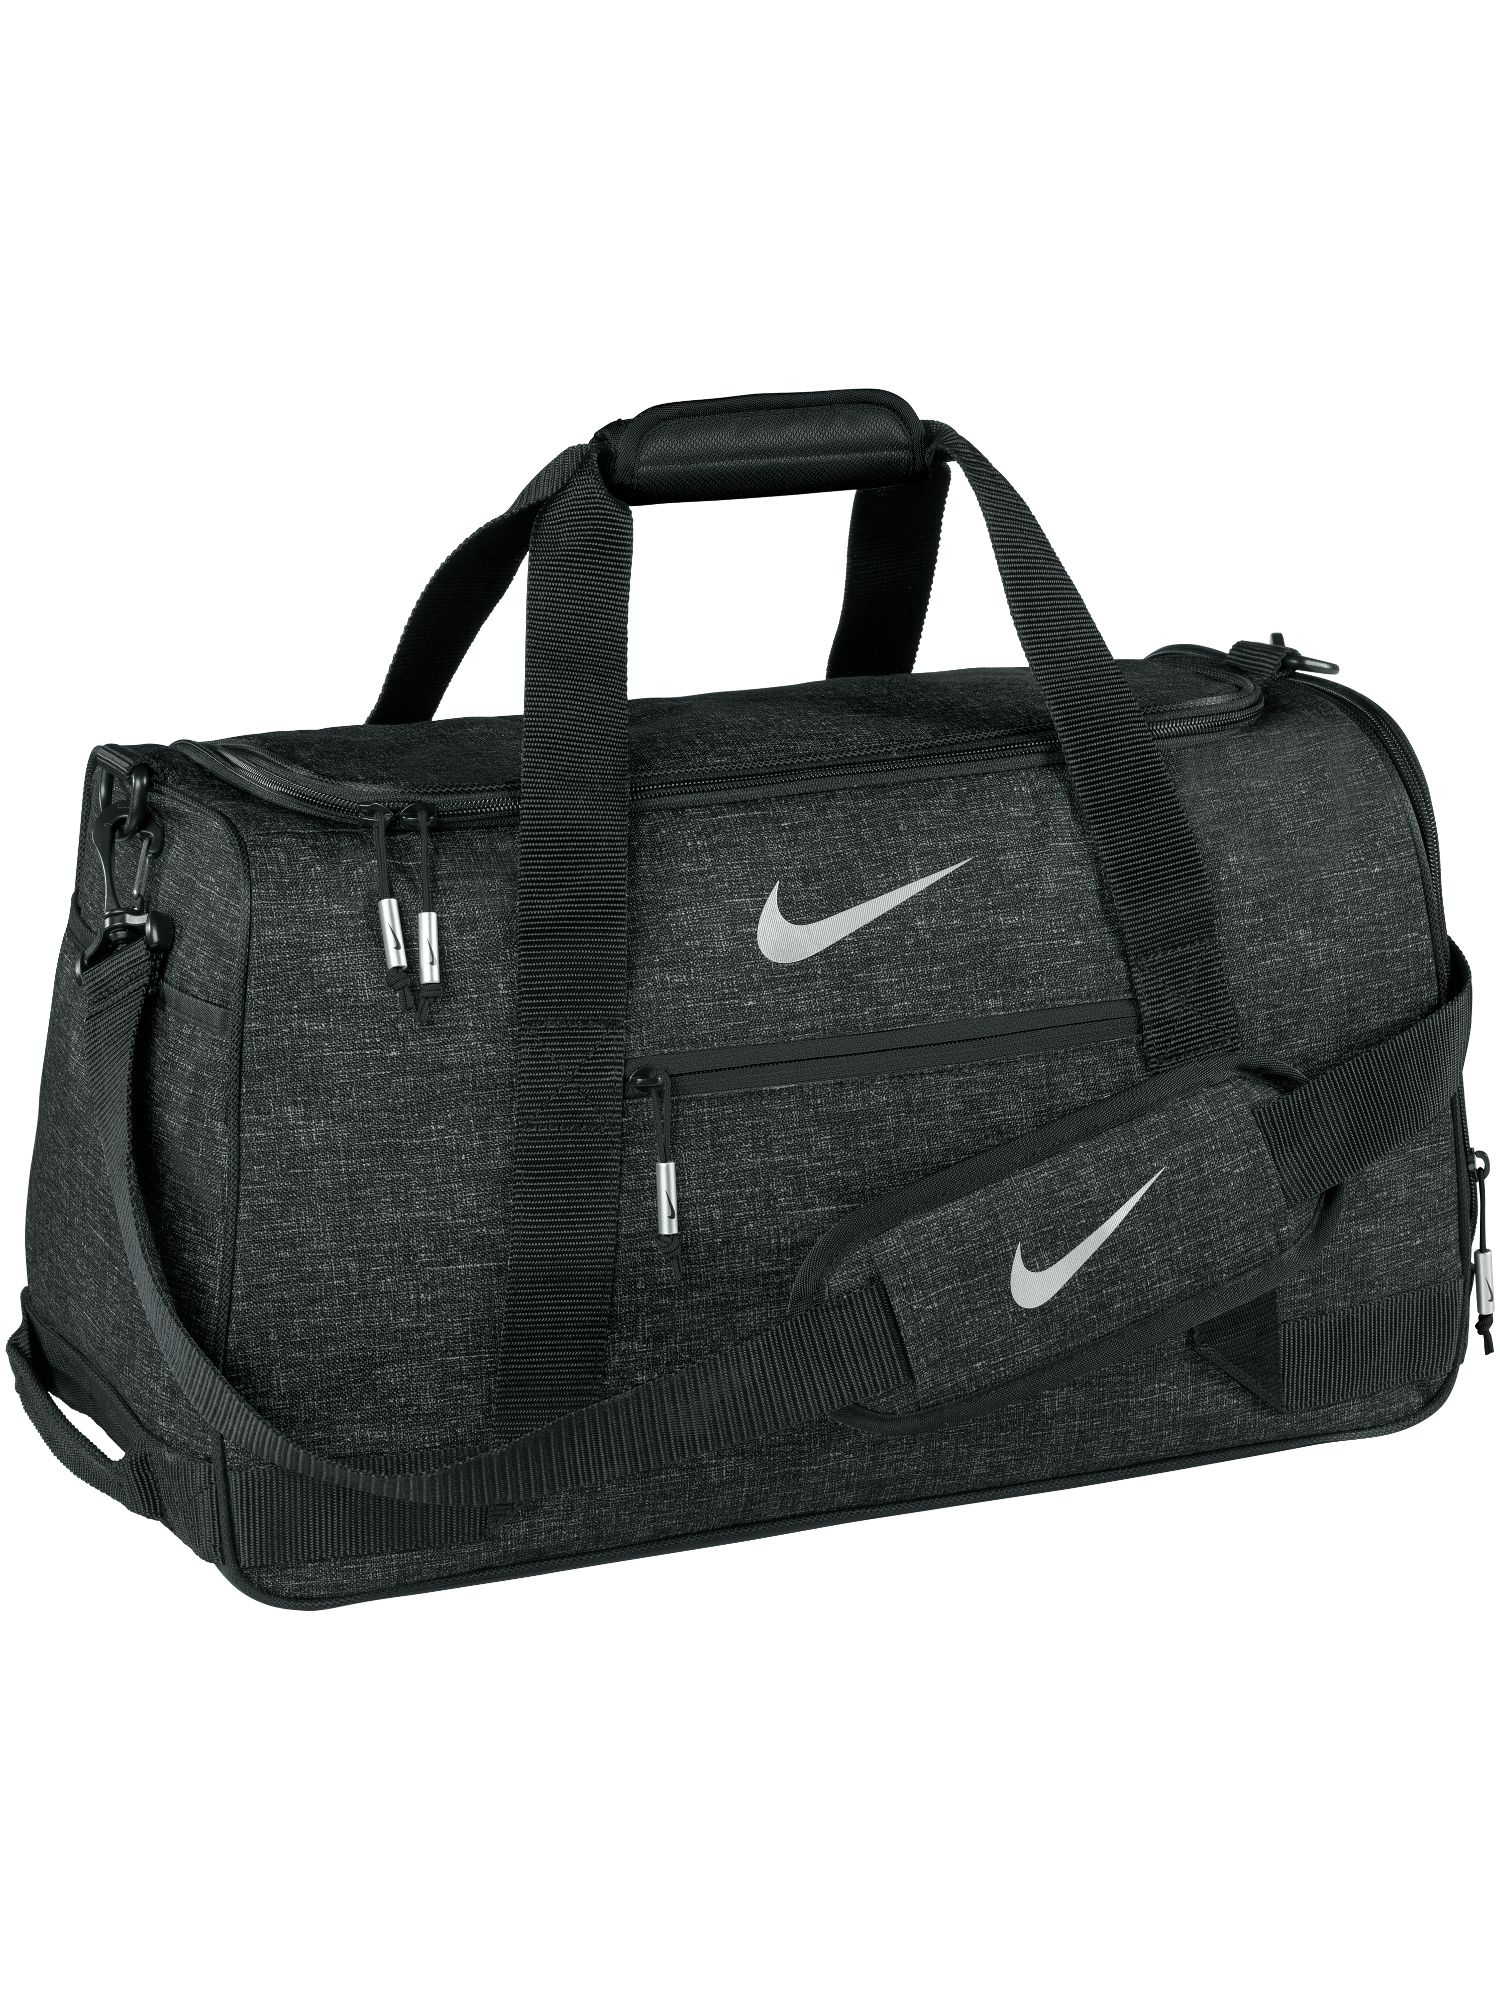 Nike Golf Sport 3 Duffle Bag, Black